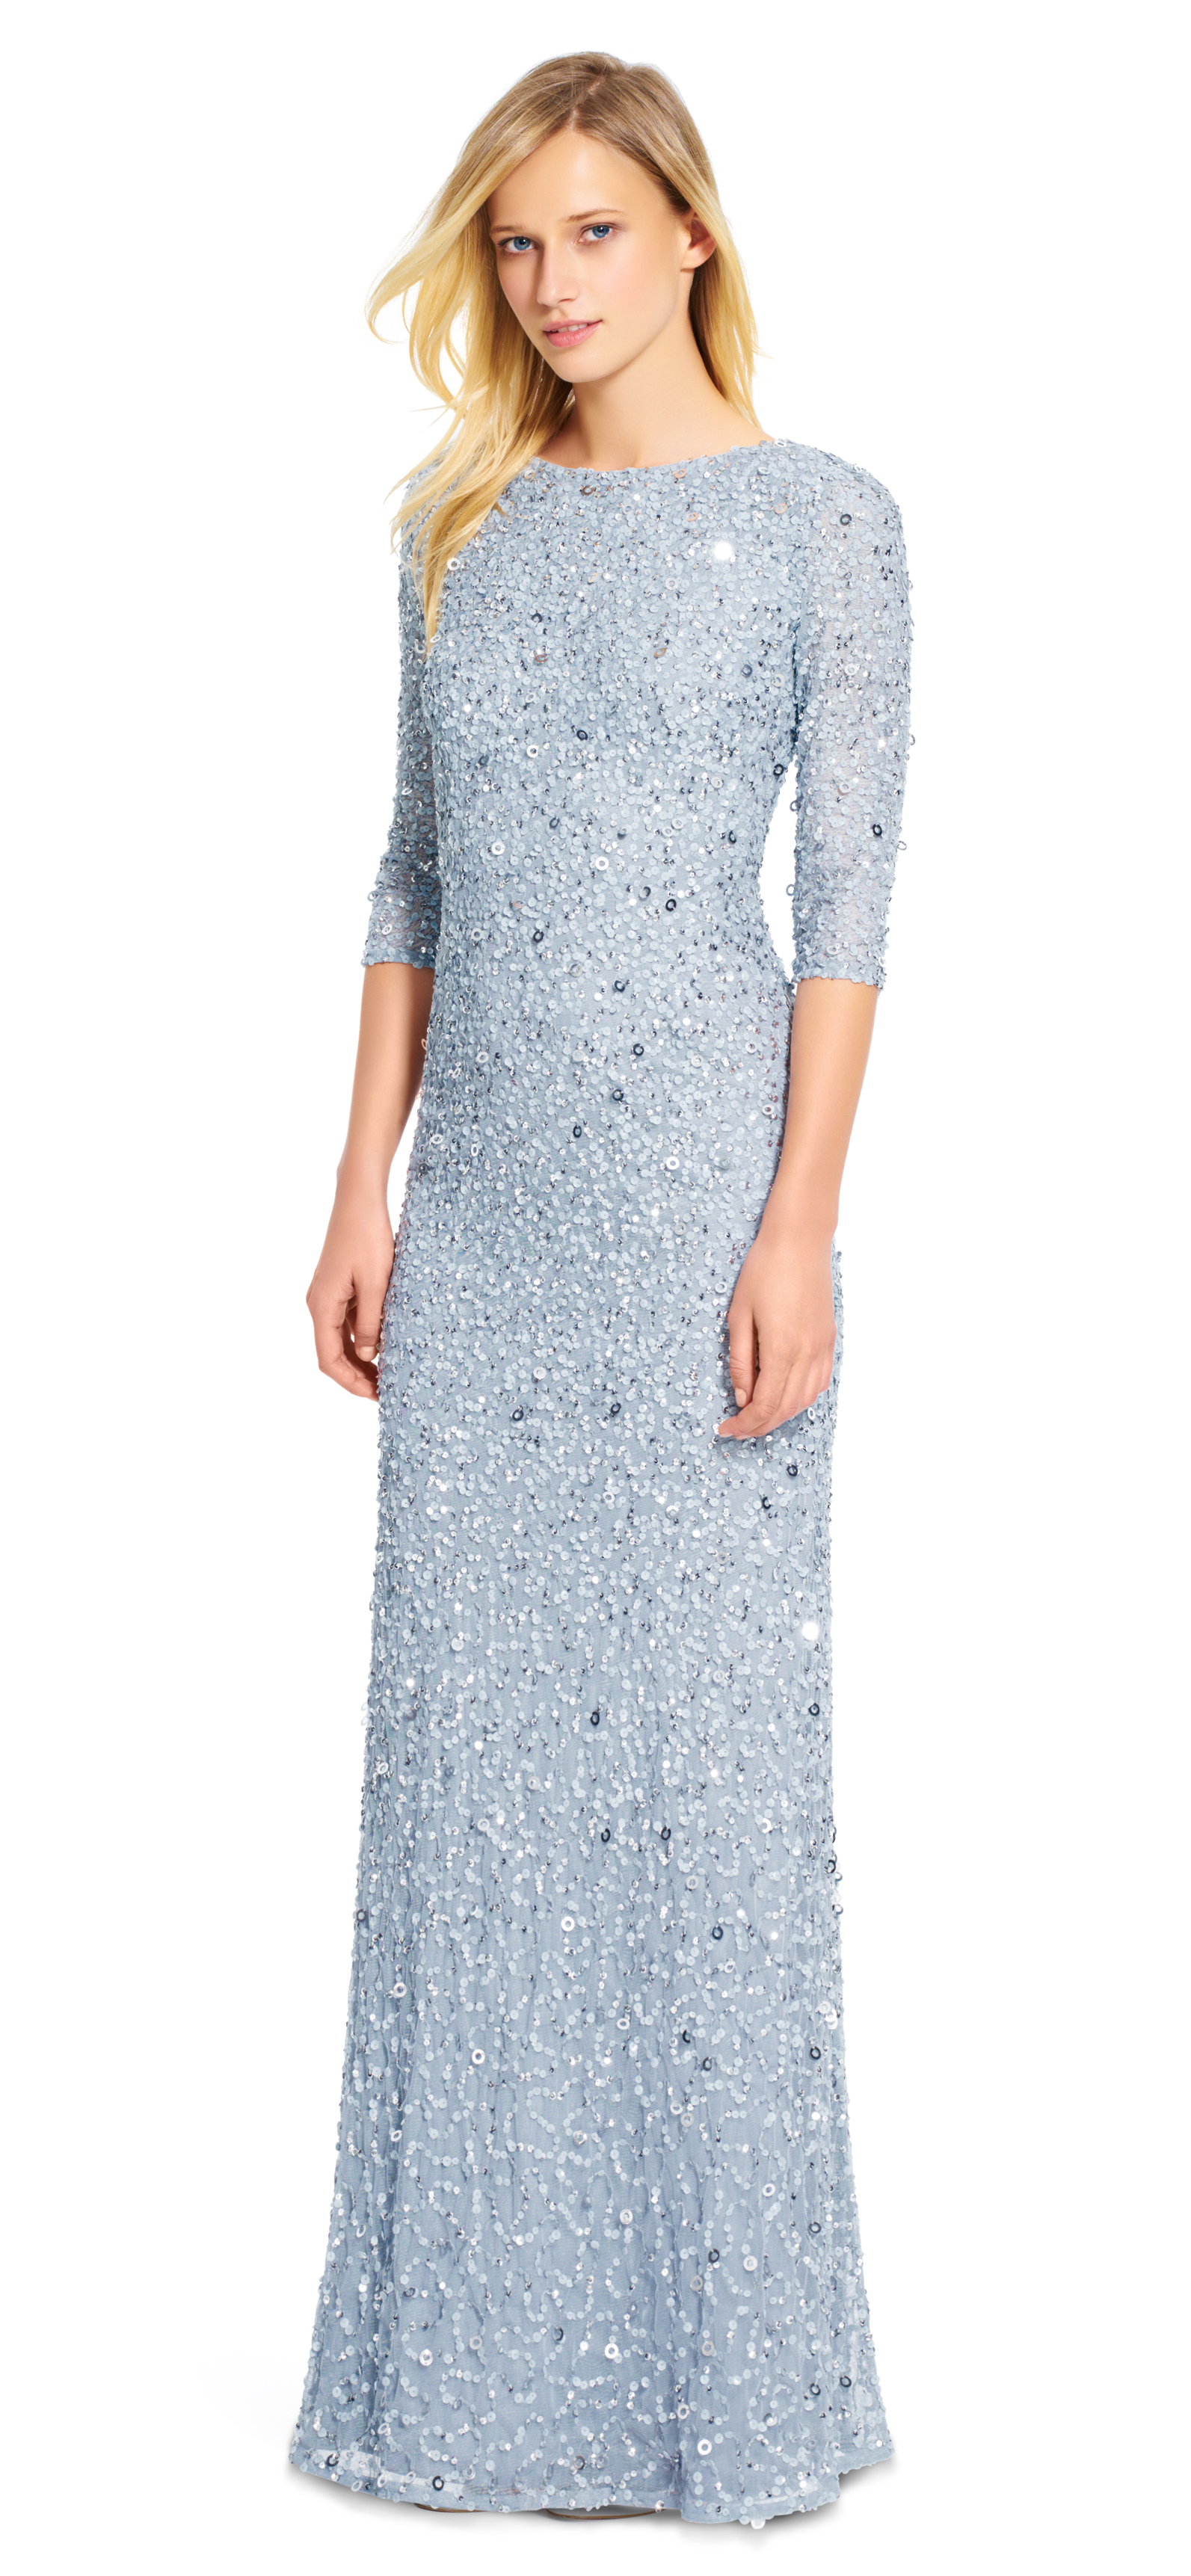 Women's Dresses from Formal to Casual.